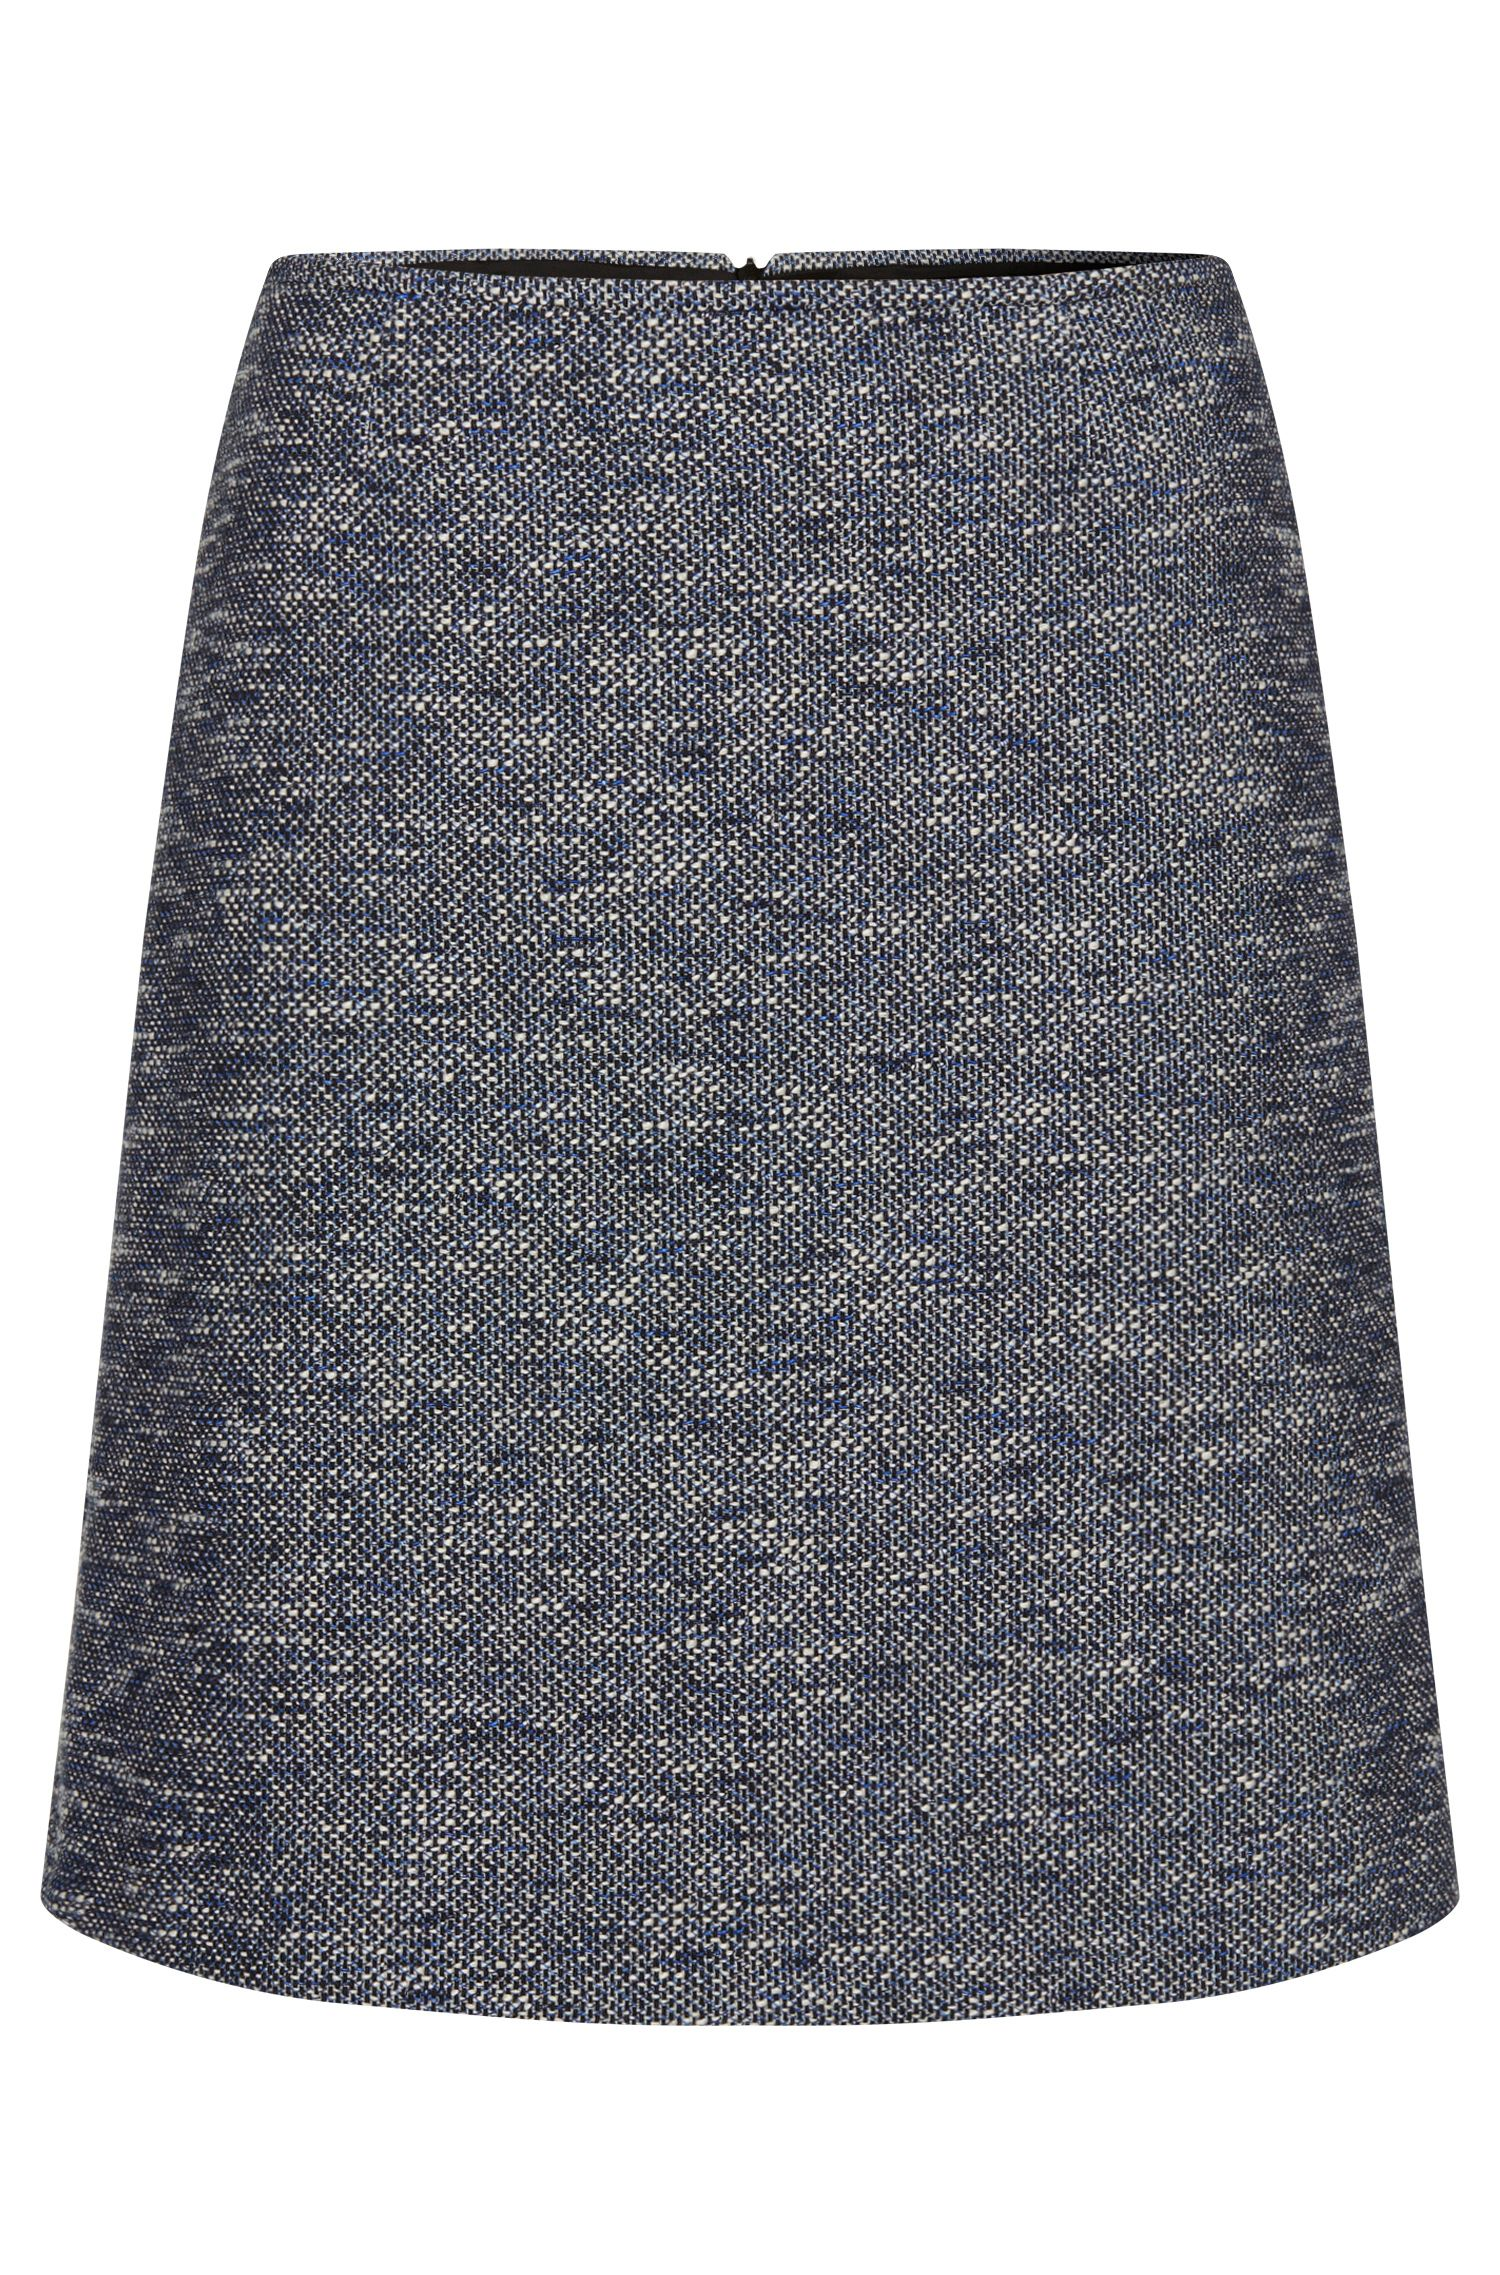 Skirt in a bouclé-look cotton blend: 'Relini-1'